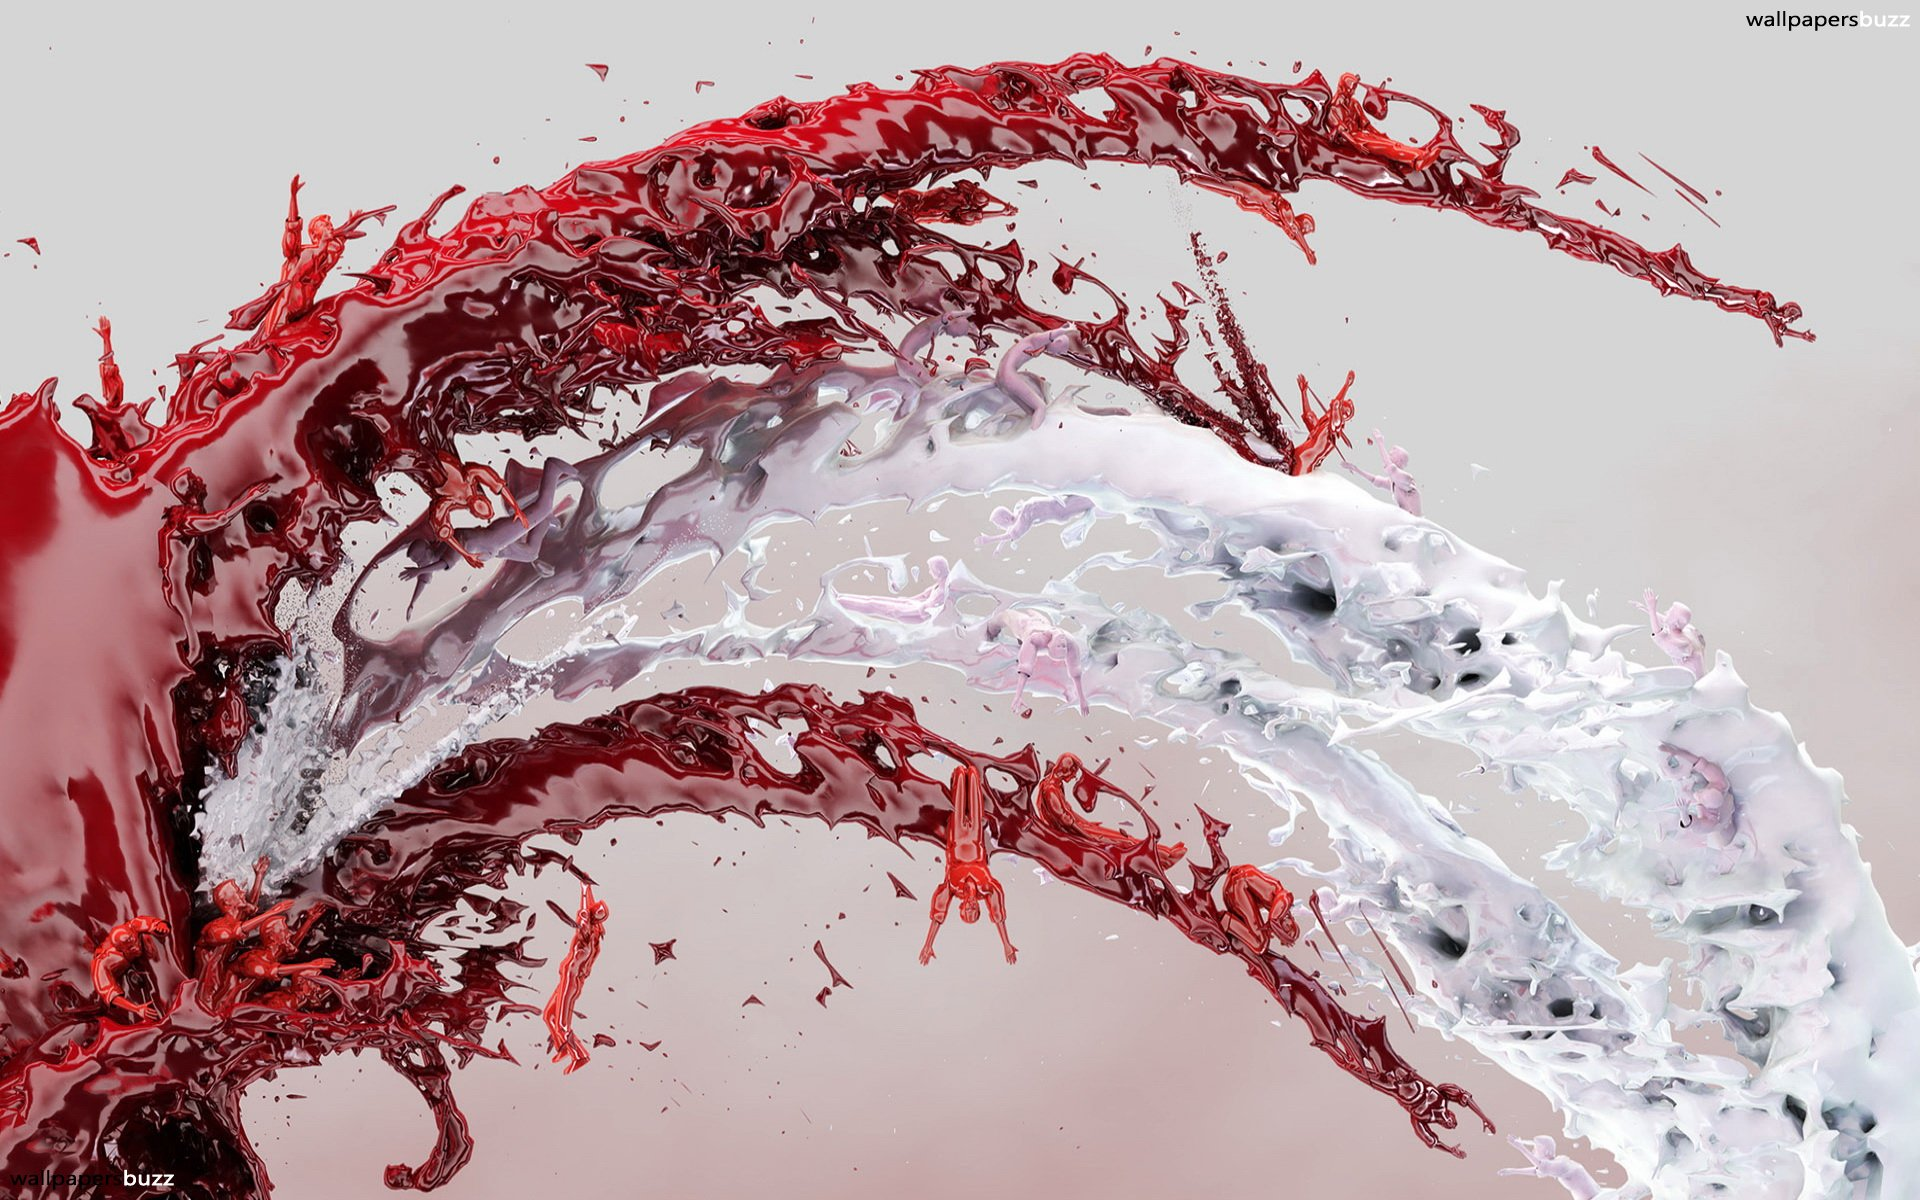 Red Abstract With And White Streams Of Milk Original Size 425458 Wallpaper wallpaper